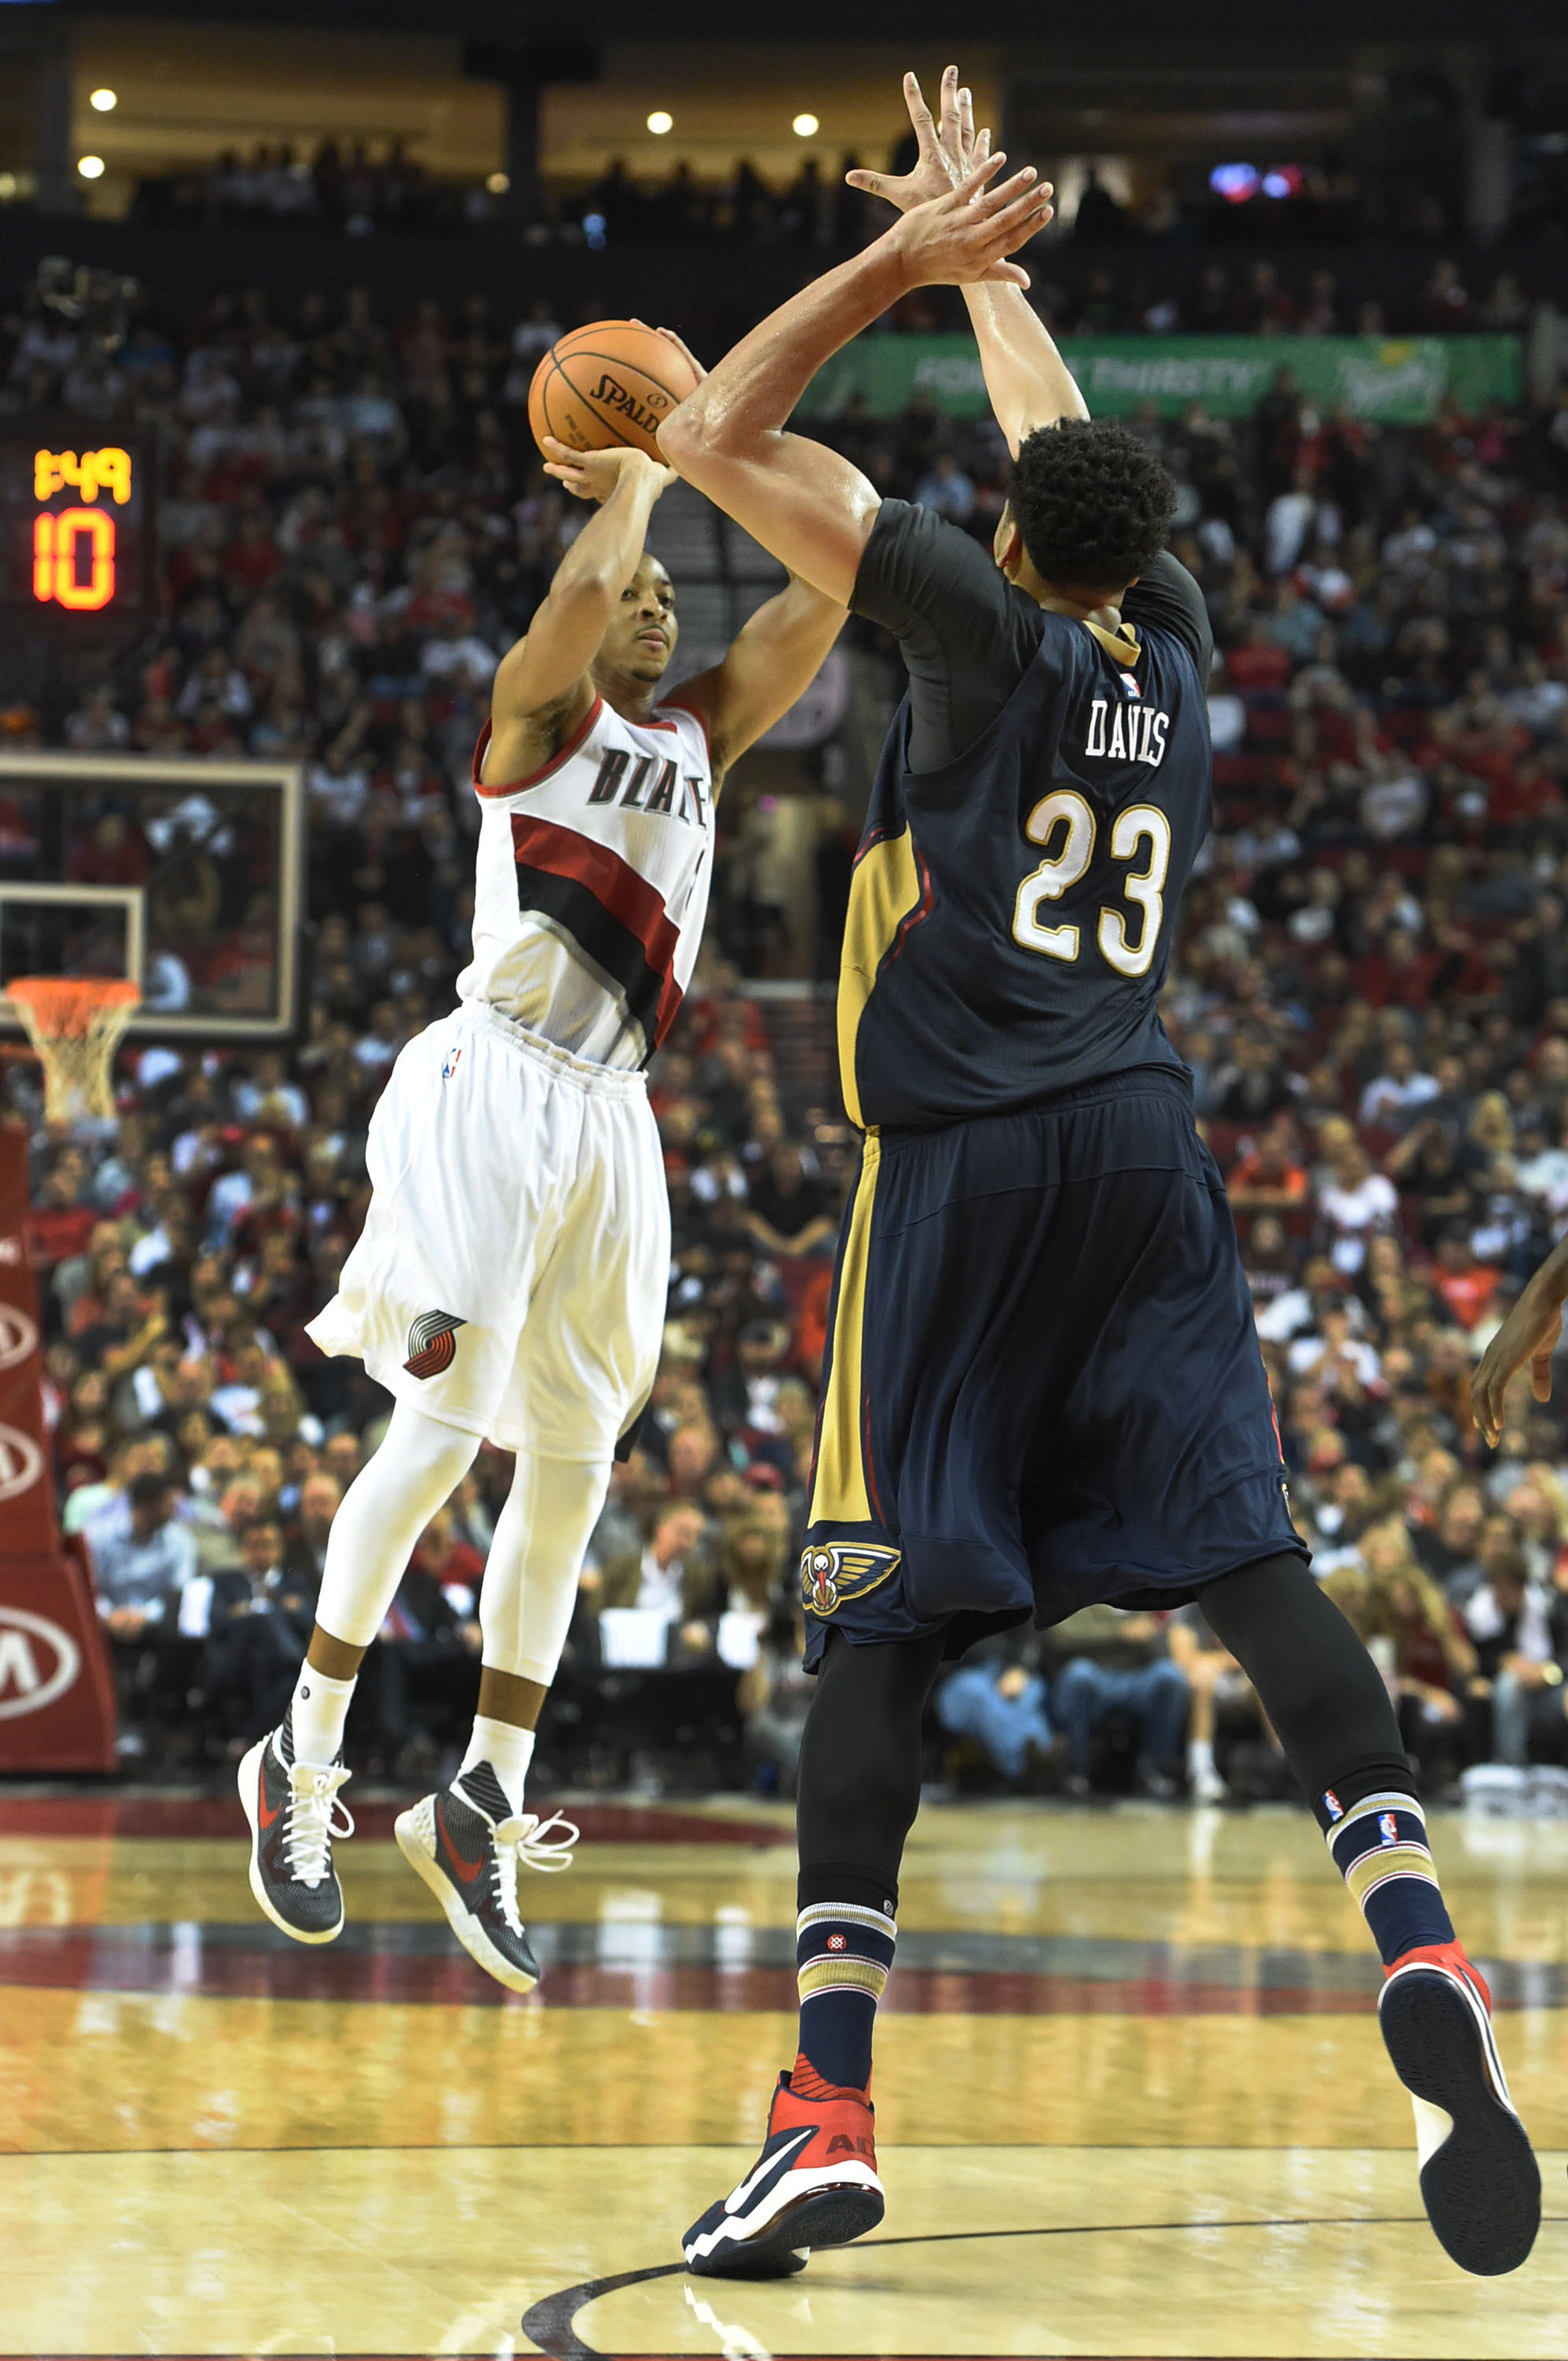 Portland Trail Blazers guard C.J. McCollum (3) hits a shot over New Orleans Pelicans forward Anthony Davis (23) during the fourth quarter of an NBA basketball game in Portland, Ore., Wednesday, October 28, 2015. (AP Photo/Steve Dykes)